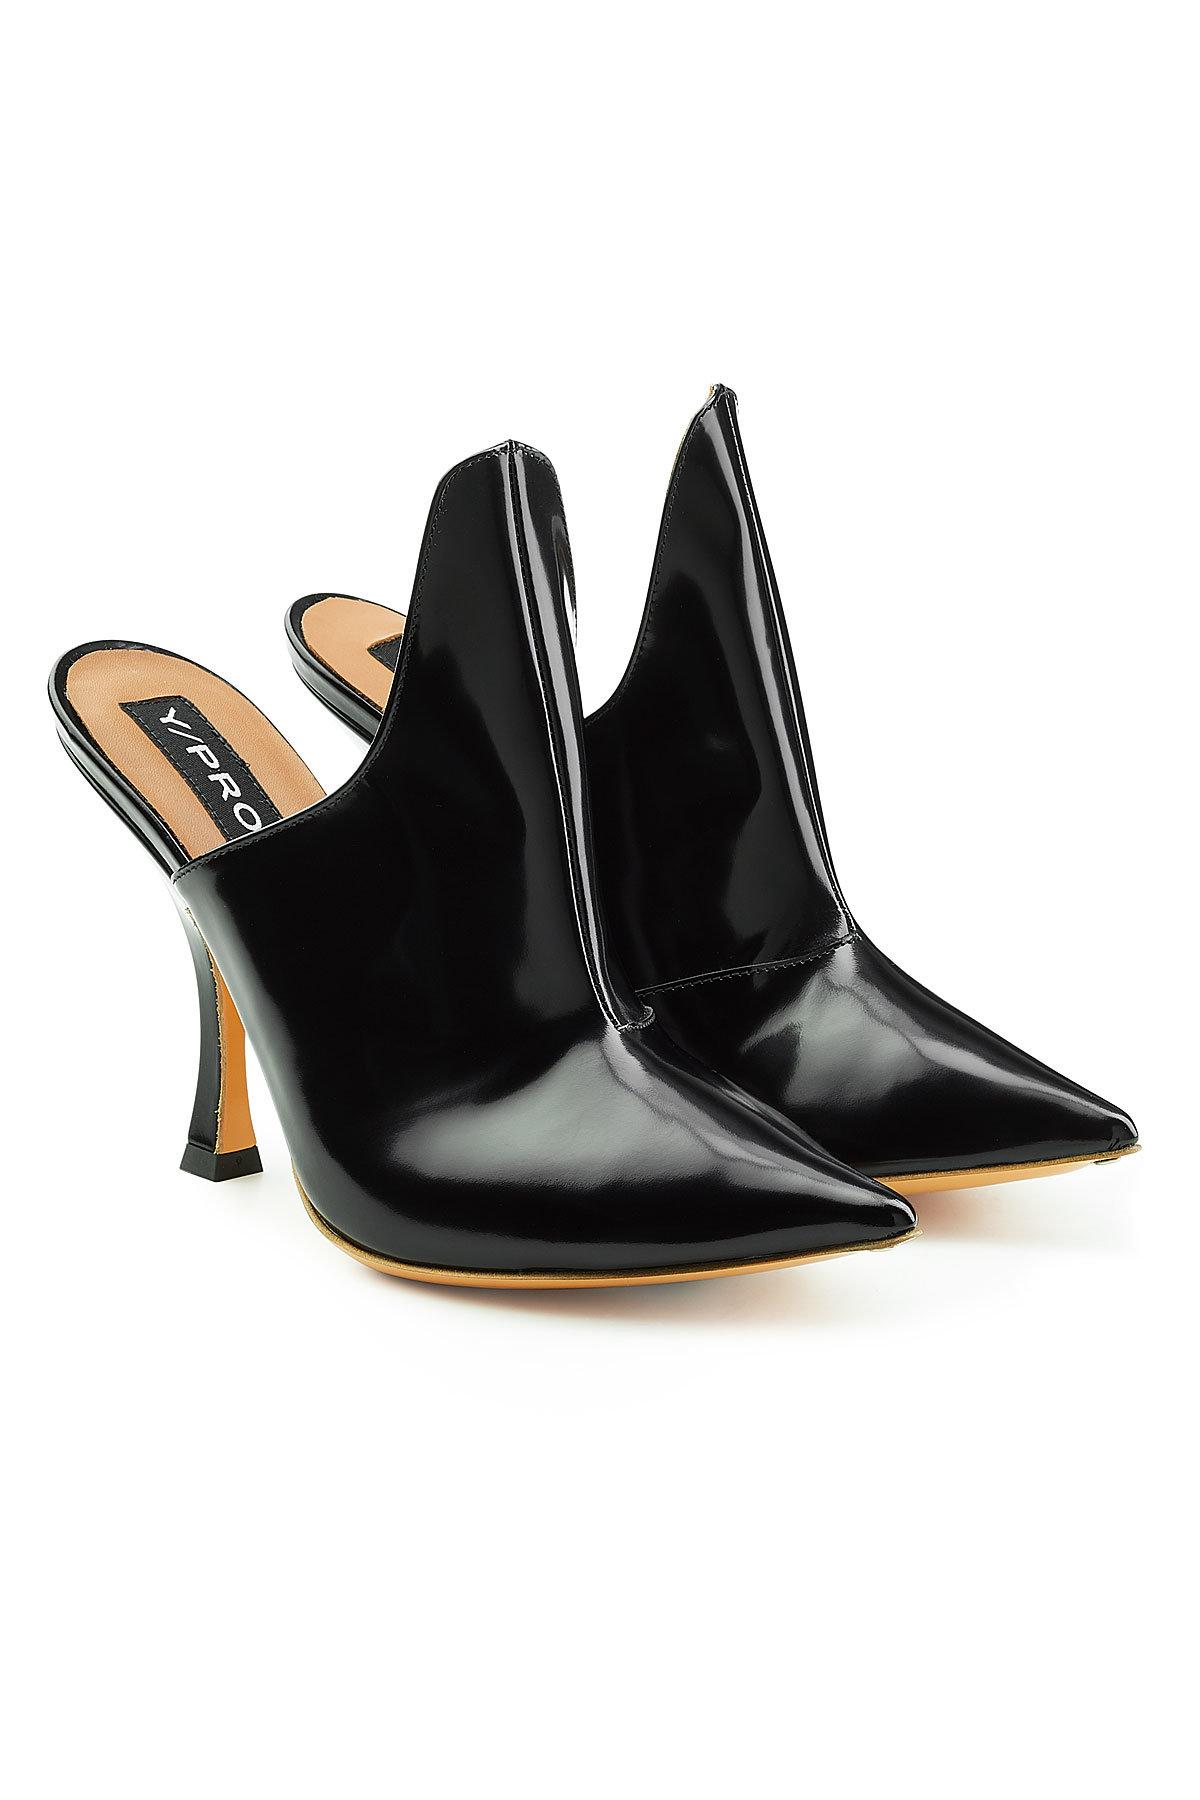 9a9278775ecb Y Project Y Project Leather Stefania Mules In Black